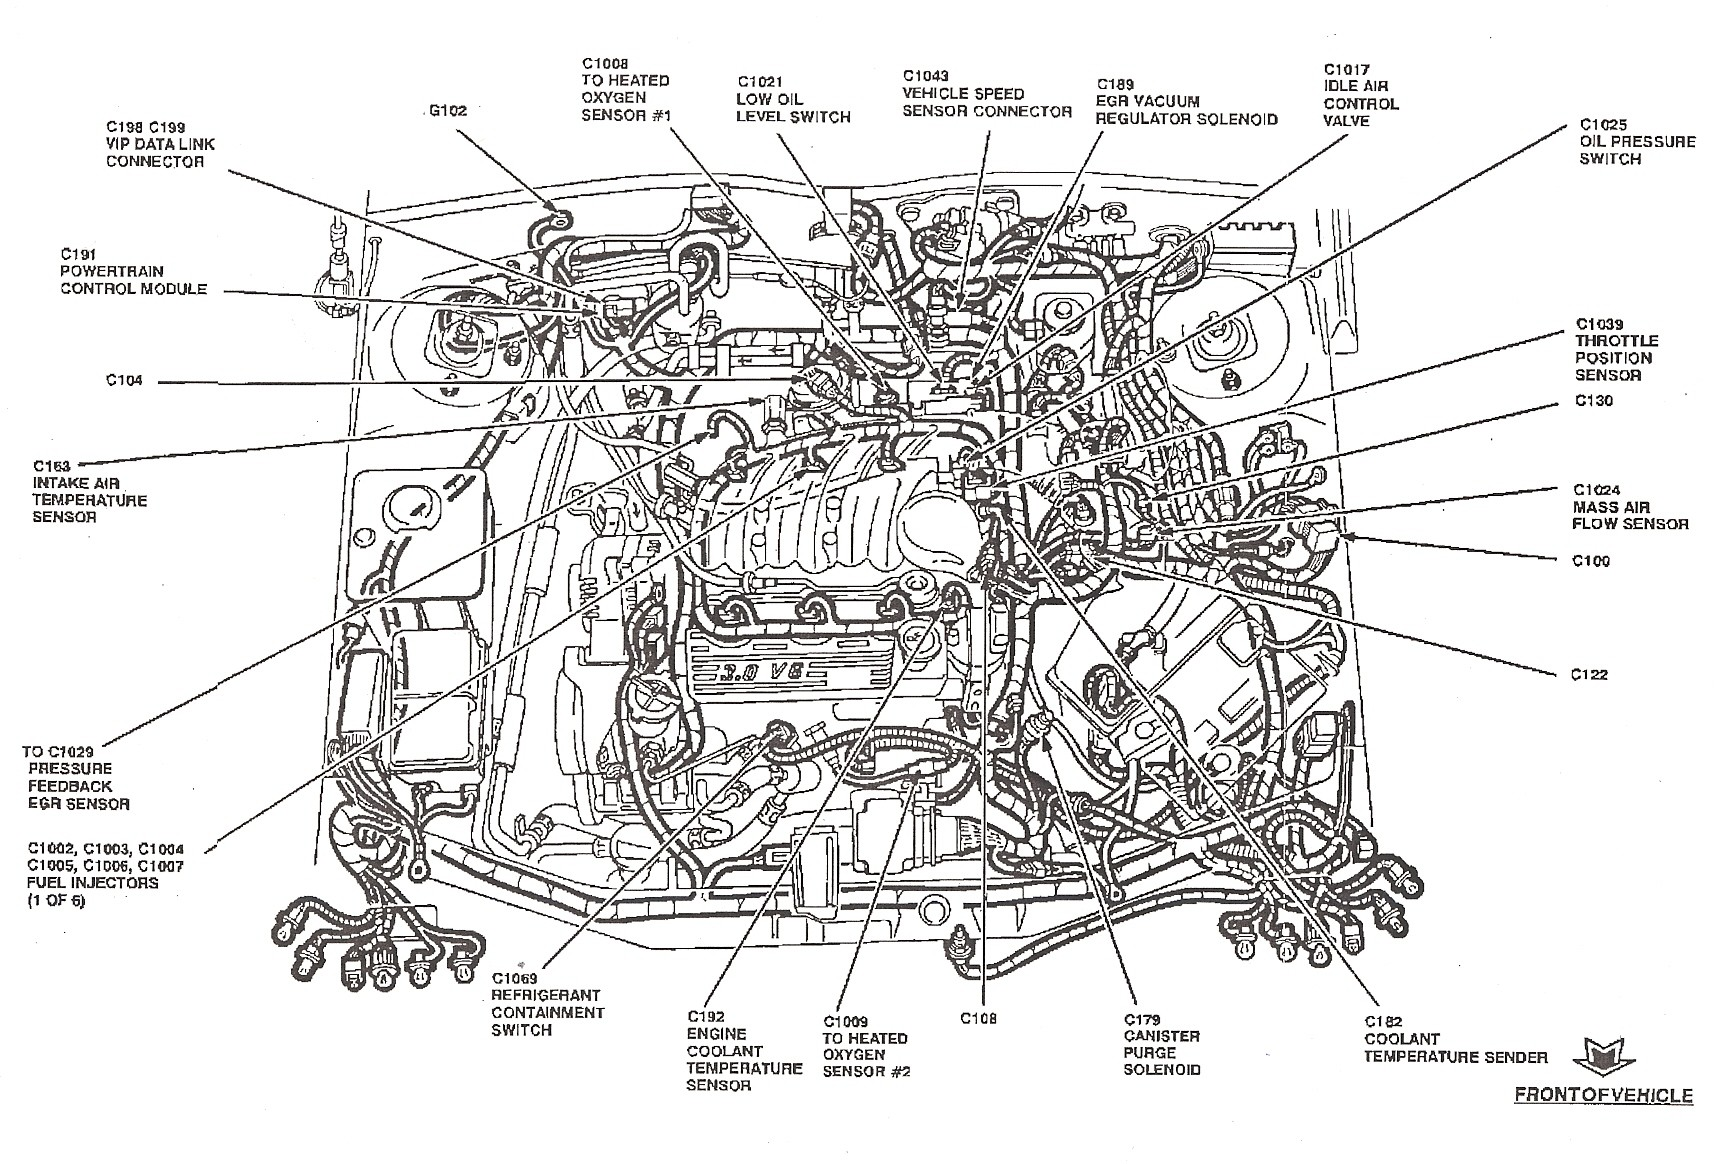 Expedition Engine Cooling Diagram on suburban engine diagram, traverse engine diagram, sport trac engine diagram, azera engine diagram, ranger engine diagram, s40 engine diagram, fj cruiser engine diagram, altima engine diagram, jetta engine diagram, tiguan engine diagram, s10 engine diagram, 2012 focus engine diagram, passat engine diagram, cts engine diagram, tsx engine diagram, bronco engine diagram, 2001 ford engine diagram, wrangler engine diagram, boss 429 engine diagram,